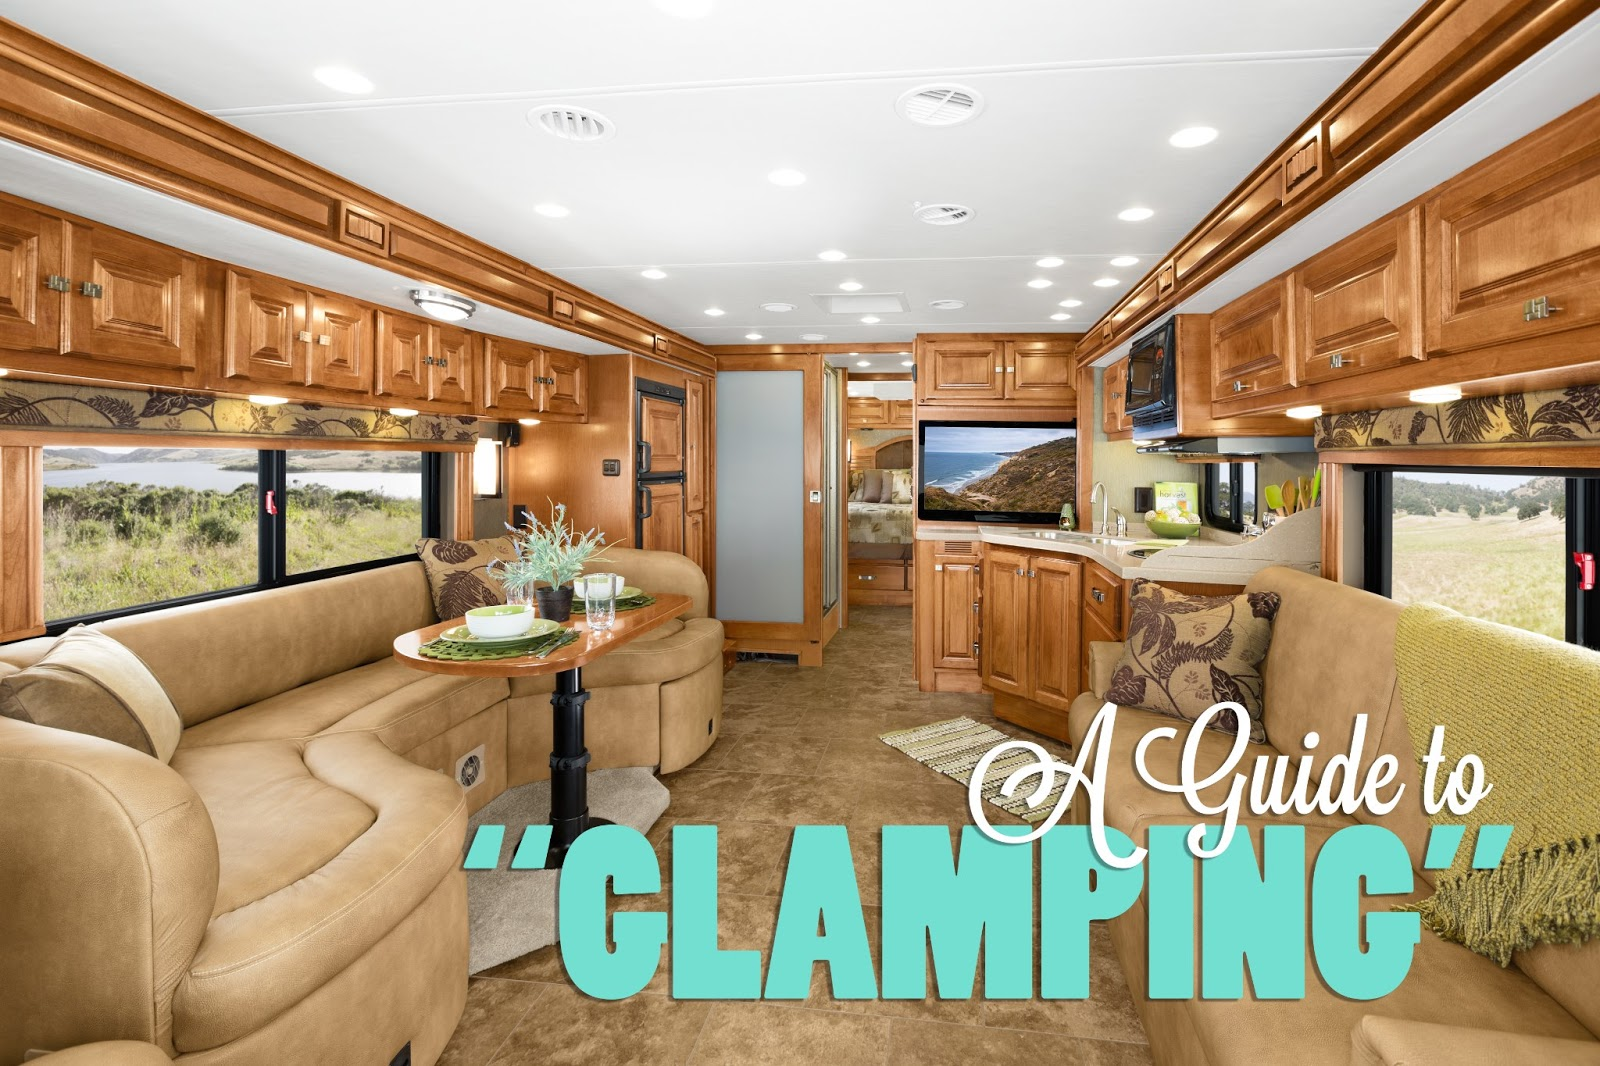 Nd level glamping intermediate fifth wheels